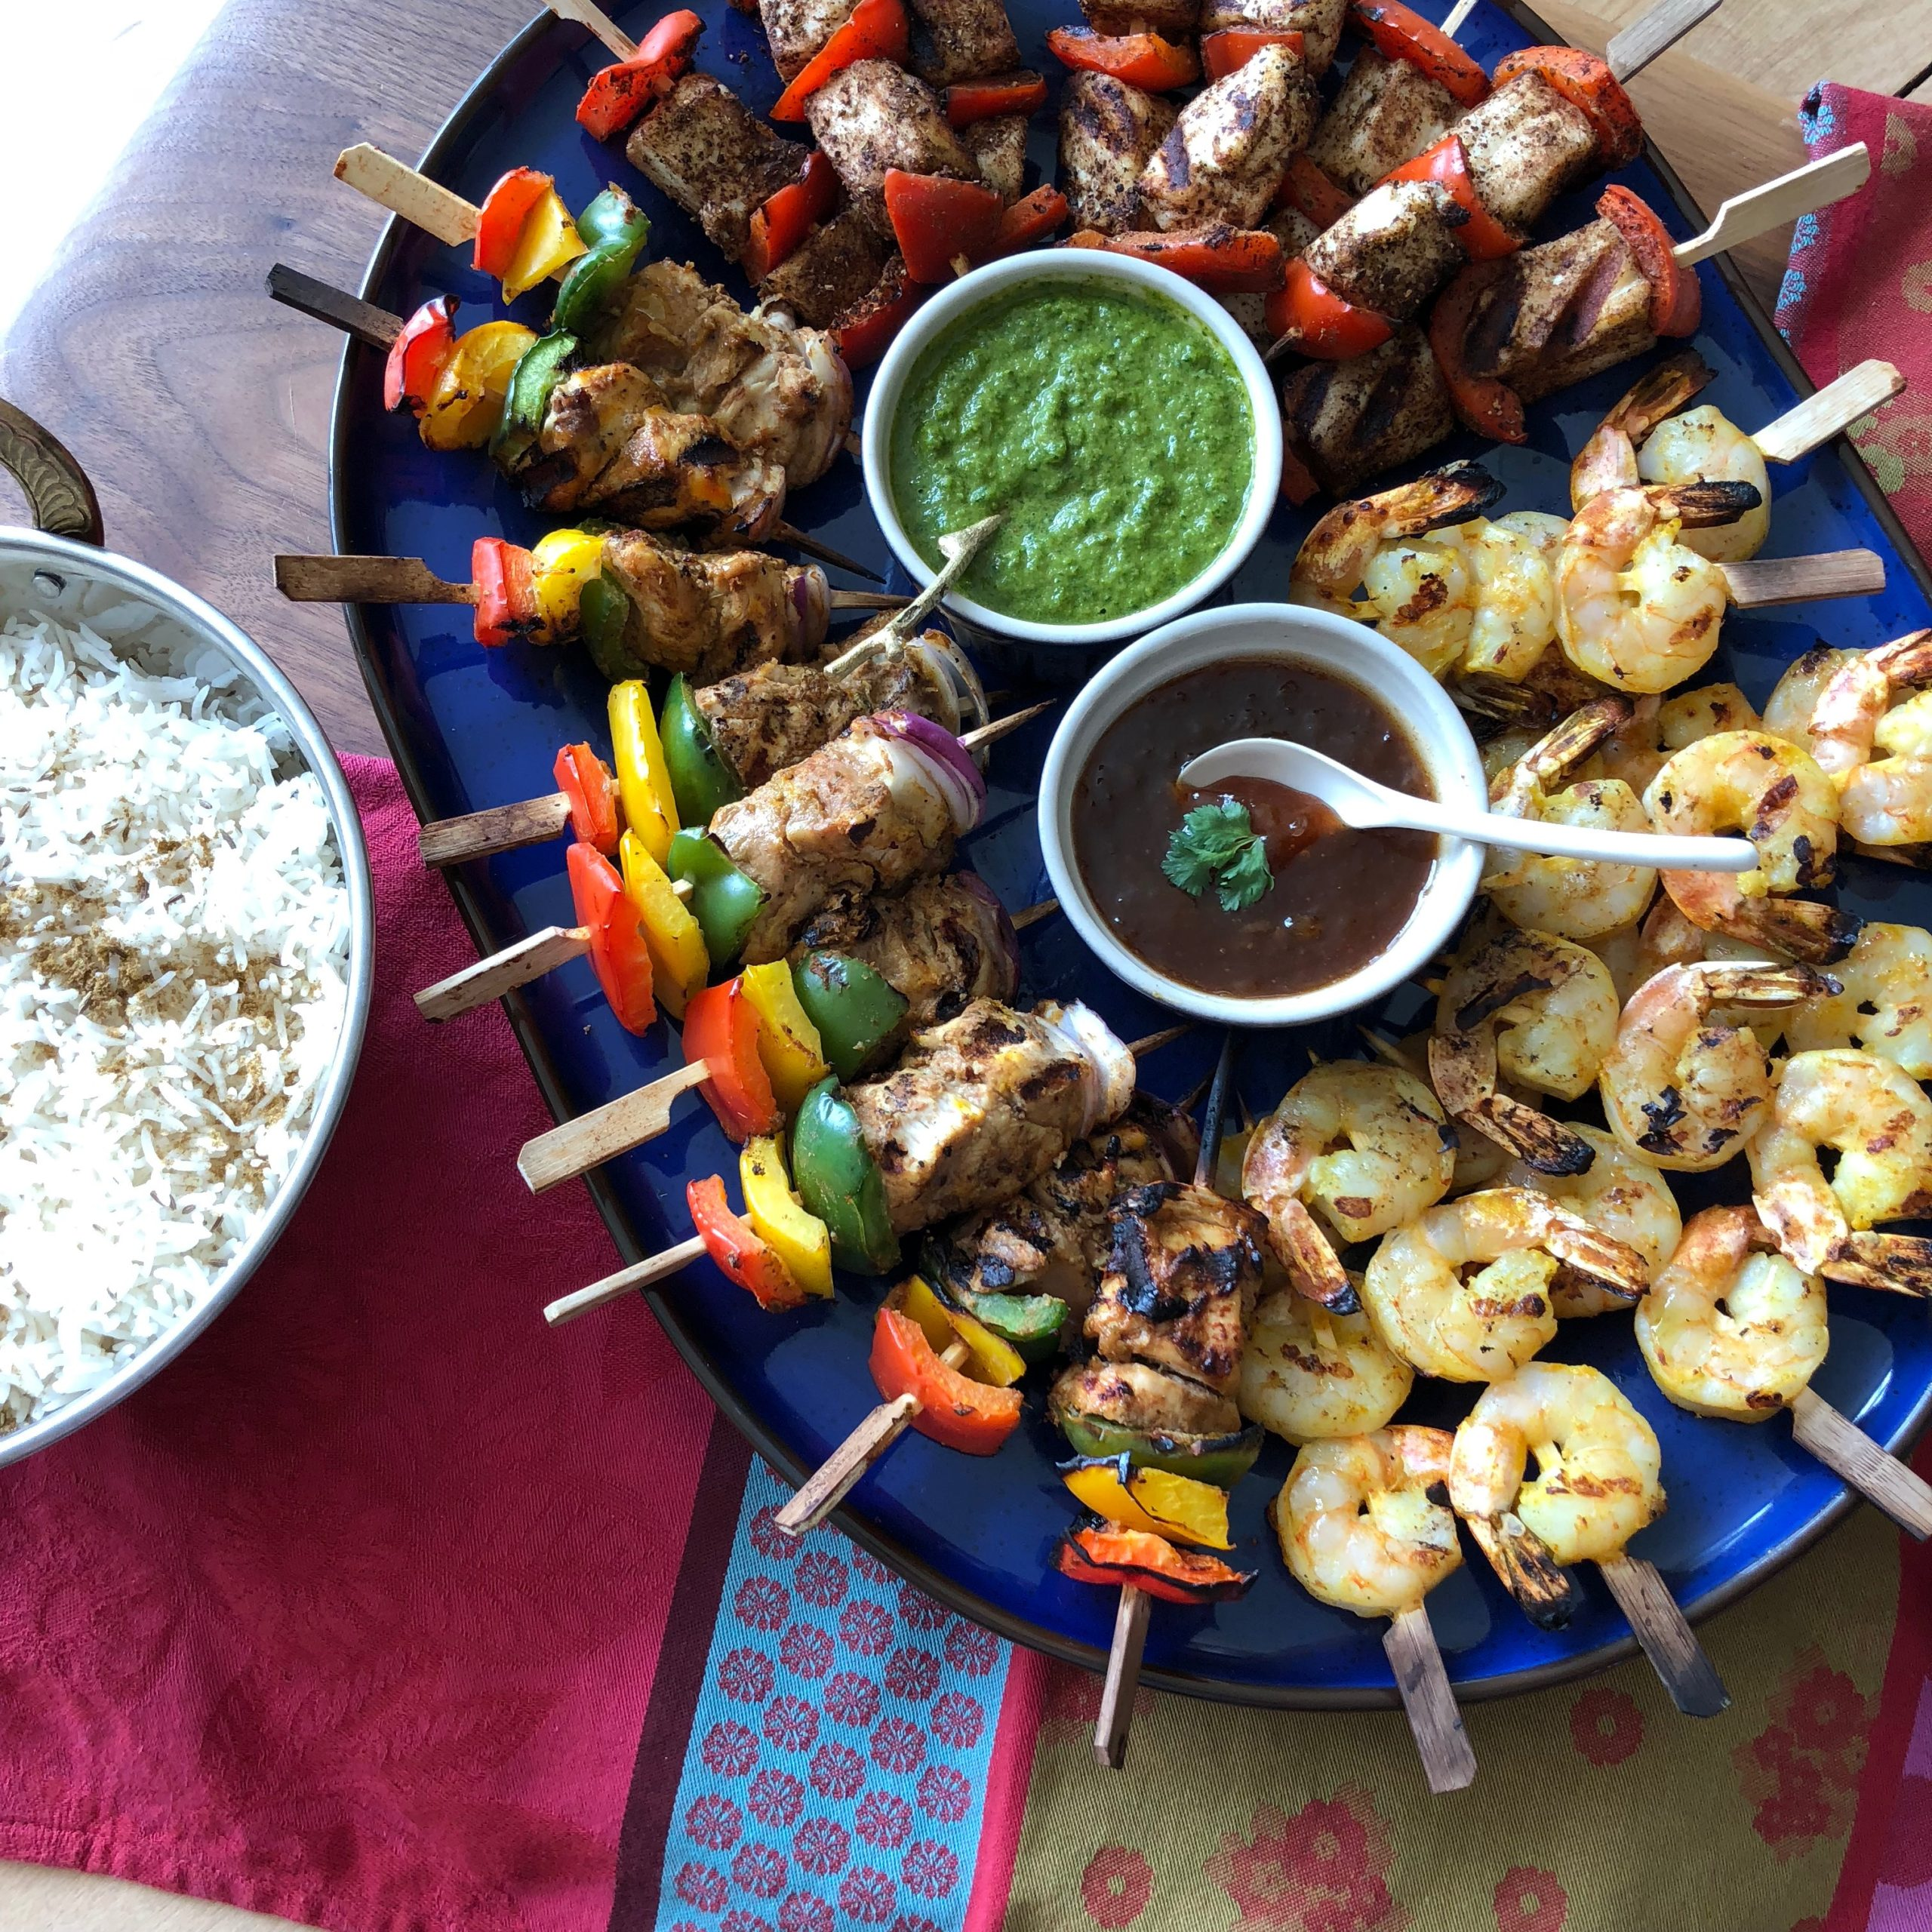 Butter Chicken kebabs, Garam Masala paneer and Tandoori Prawns